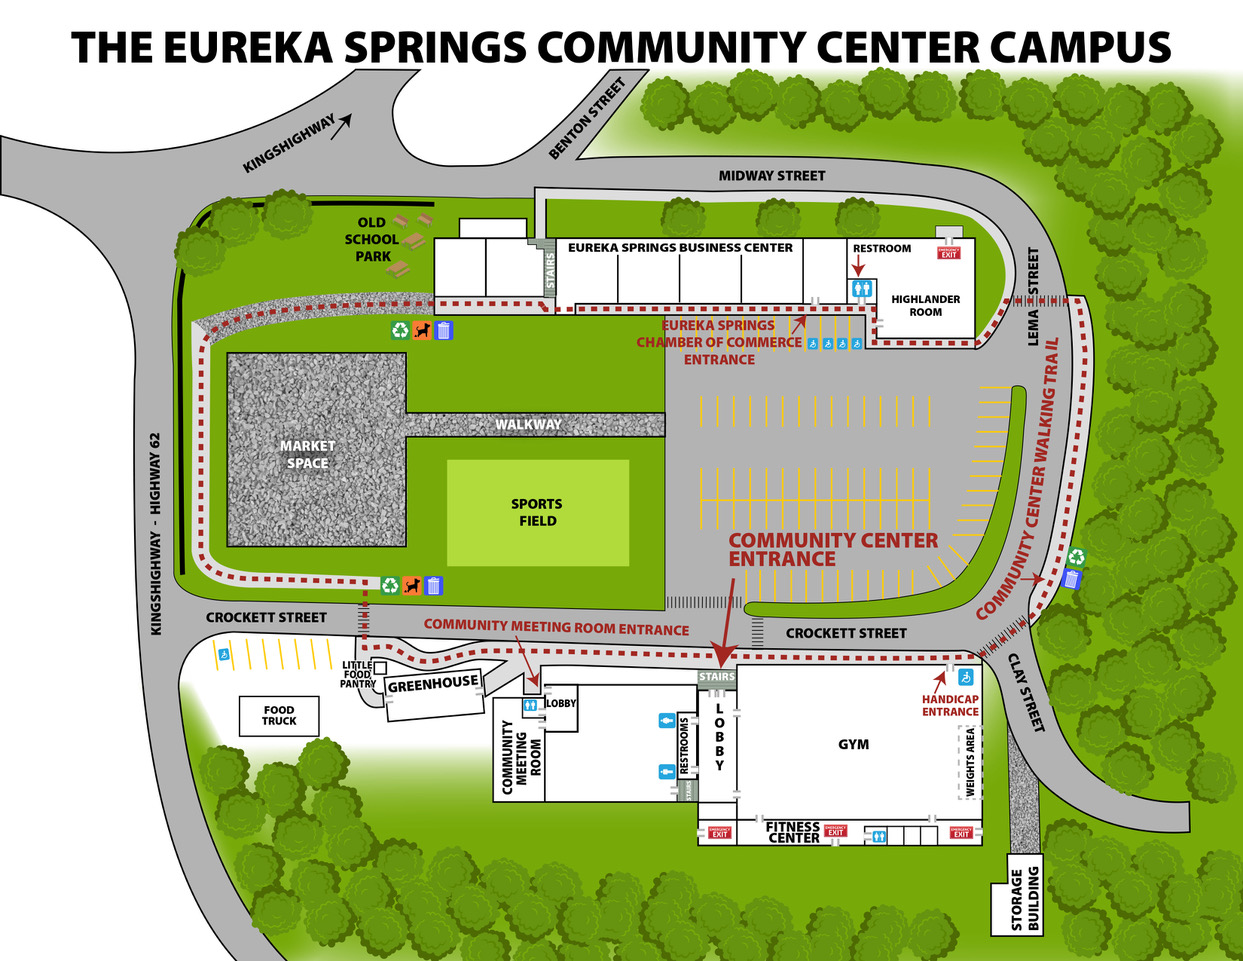 map of the layout of the community center campus